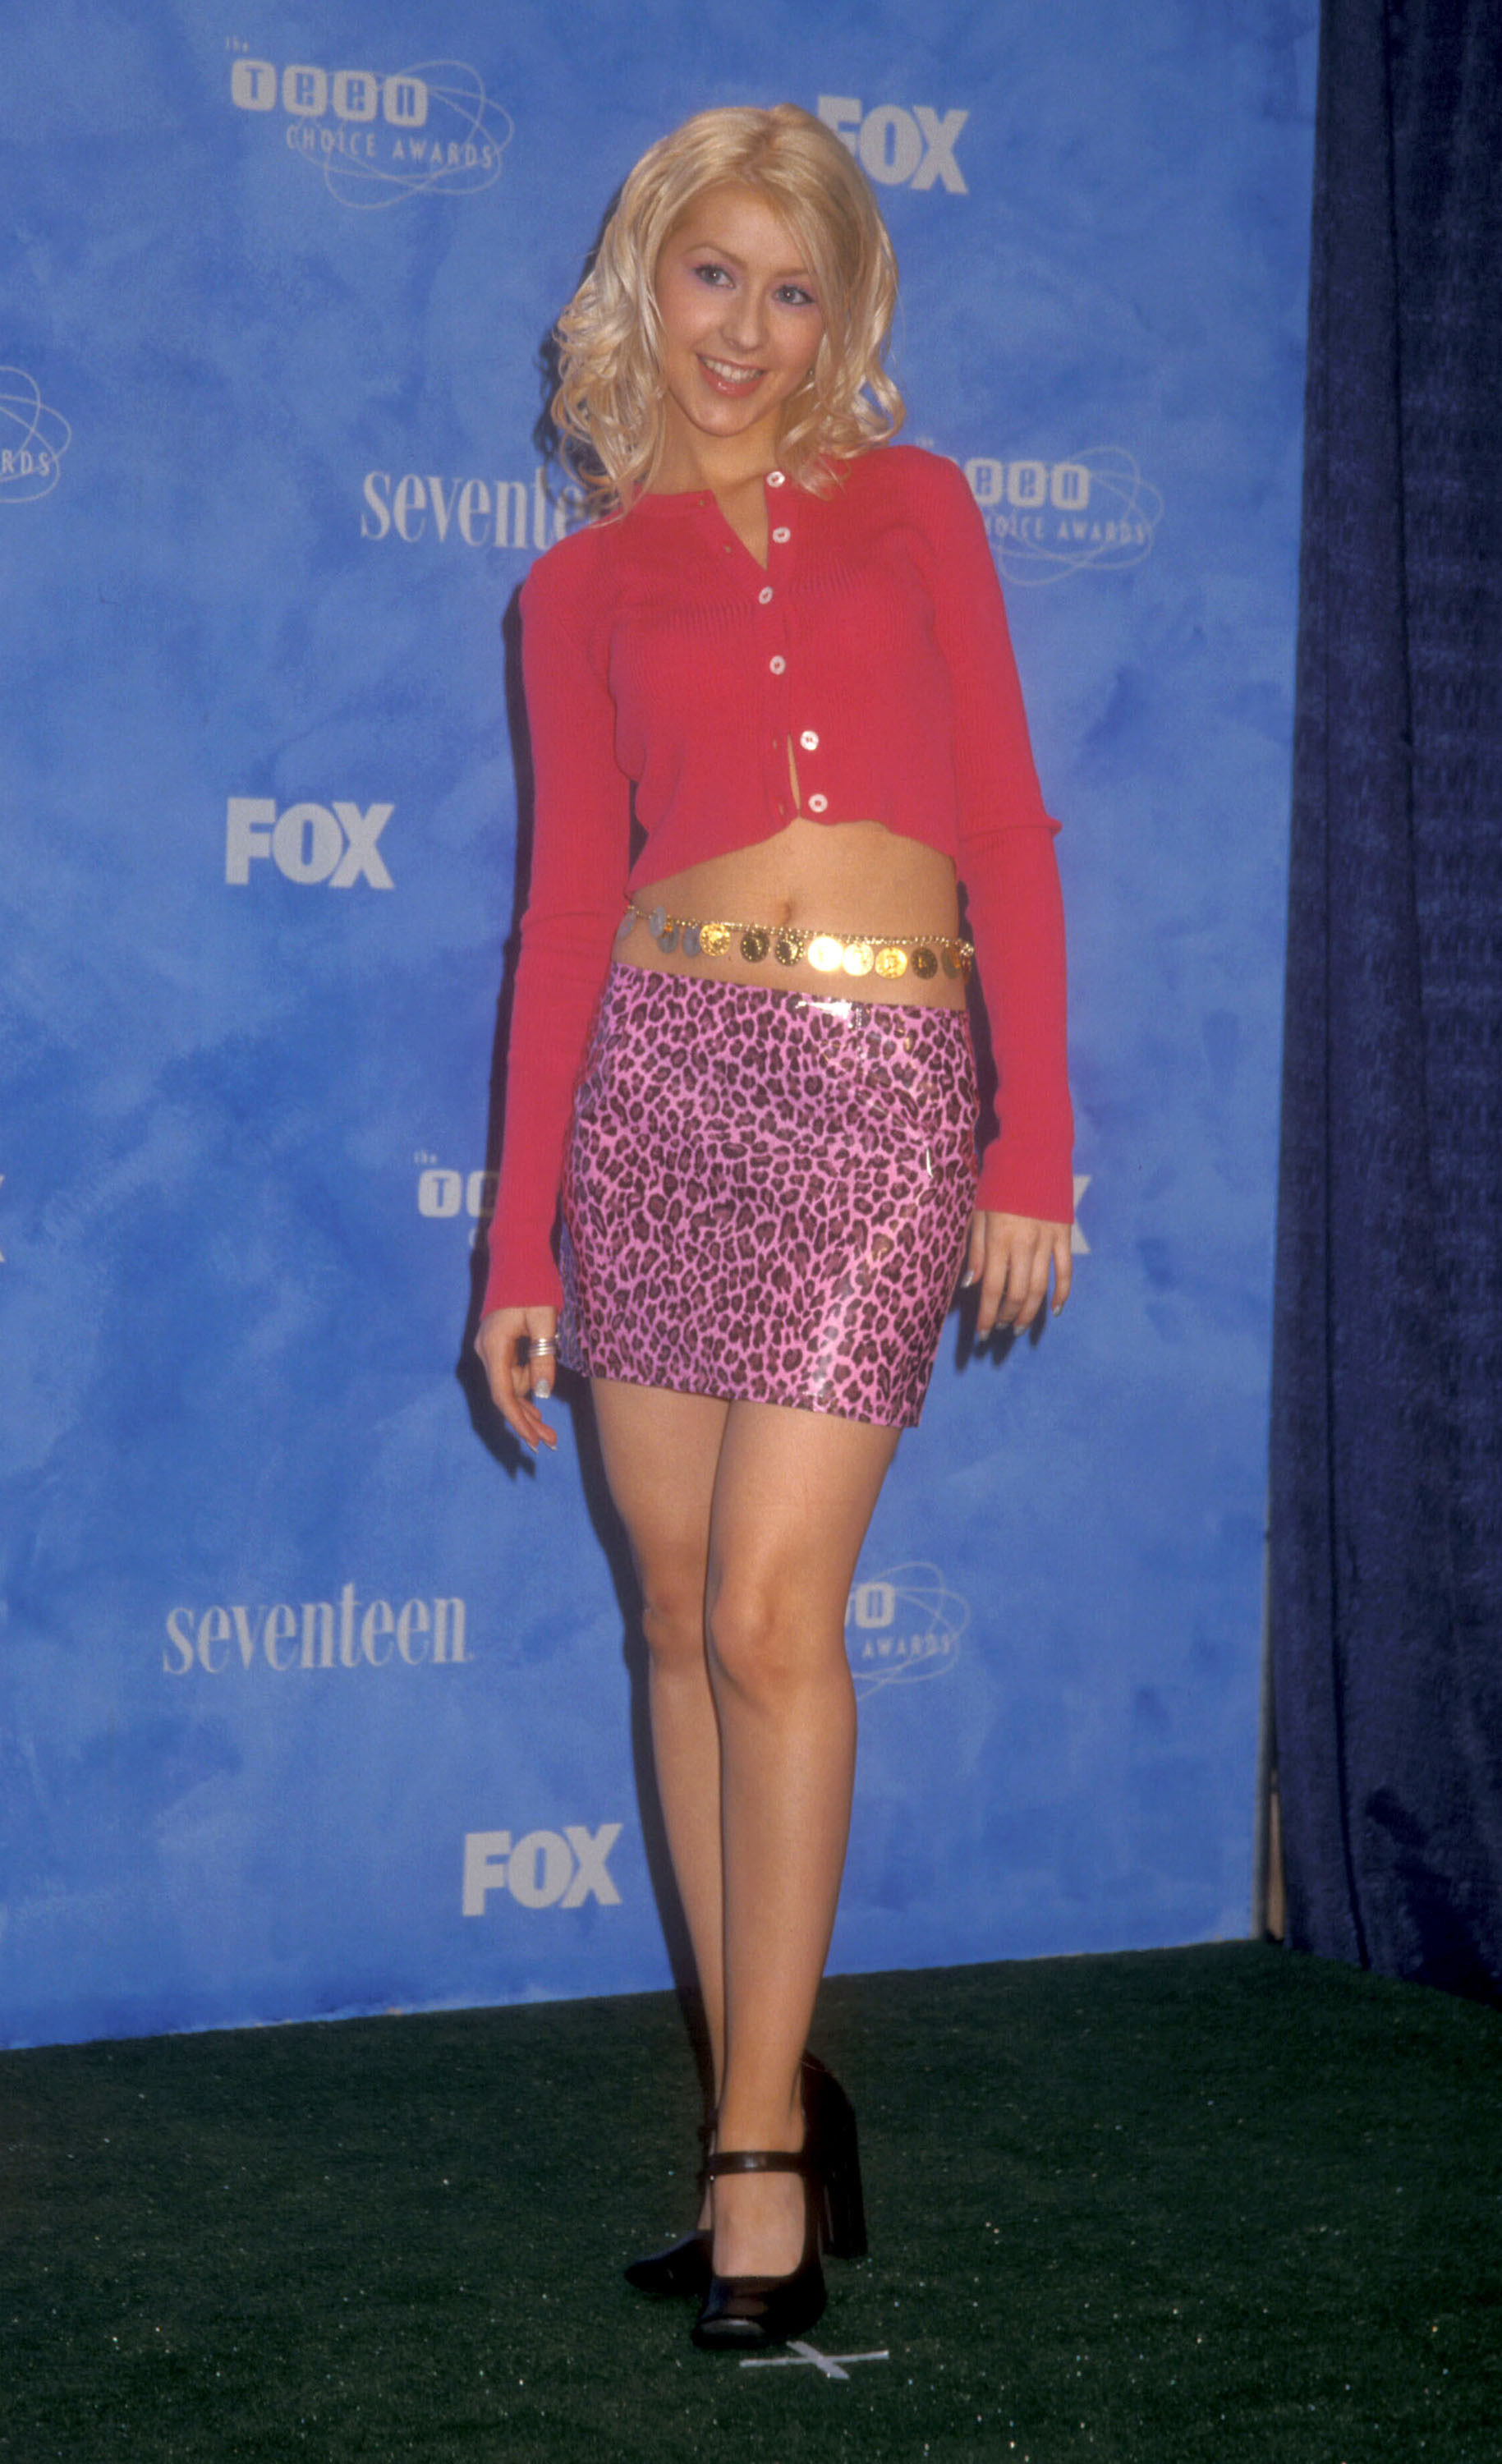 Photo ofChristina Aguilera smiling on at a premiere